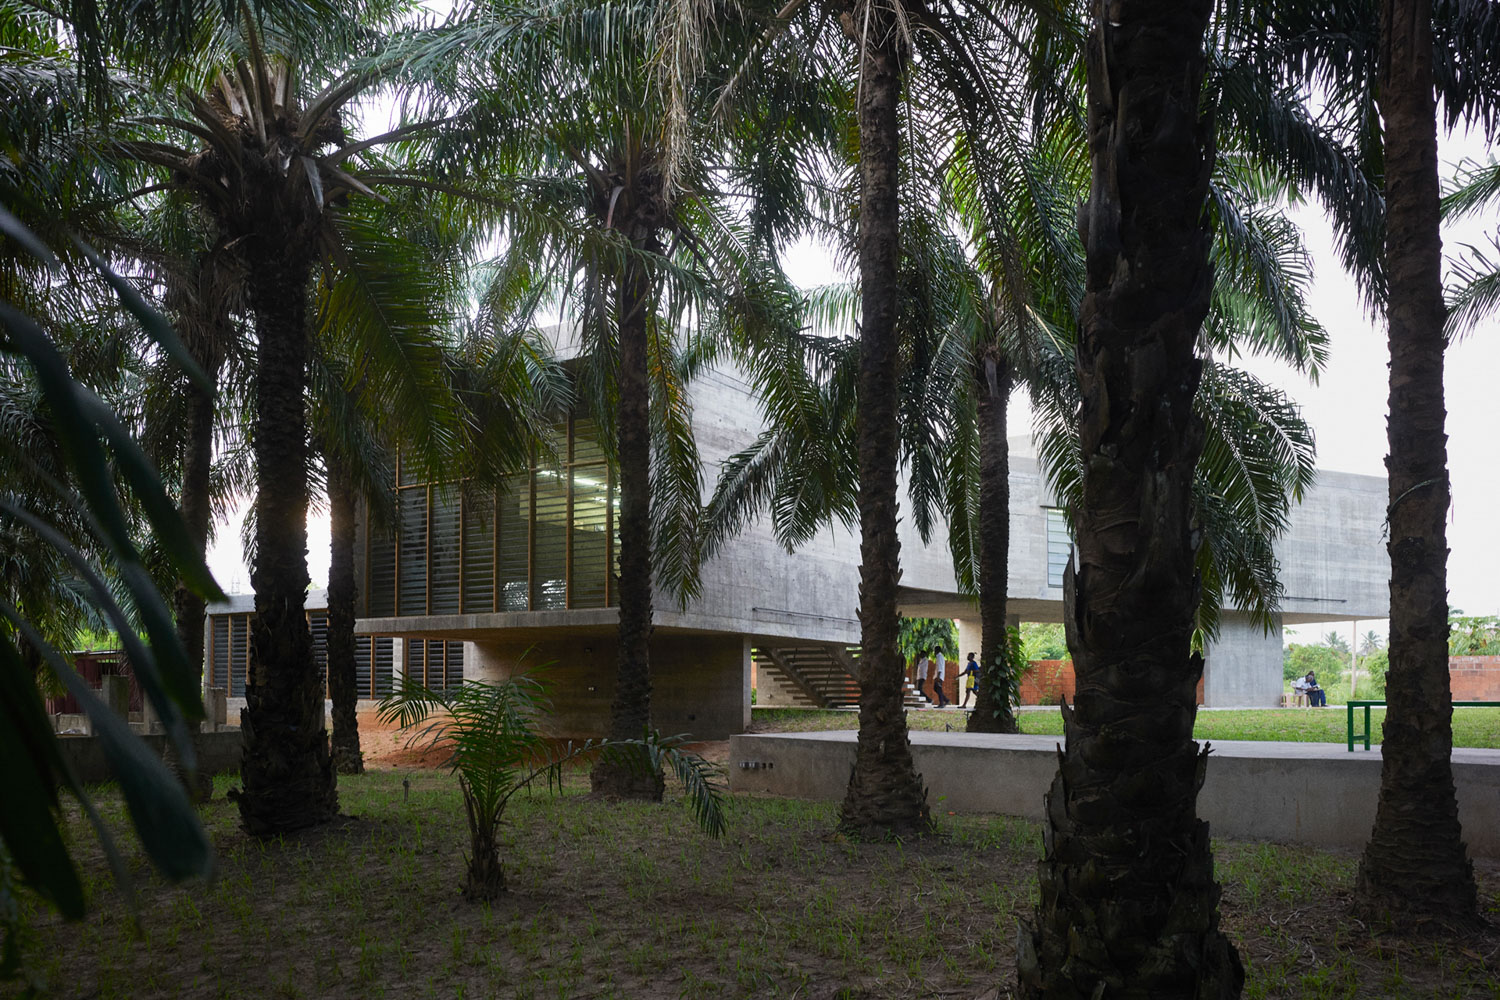 Existing landscape features such as the Nubuke palm grove were integrated into the design of the campus and new gallery building Julien Lanoo